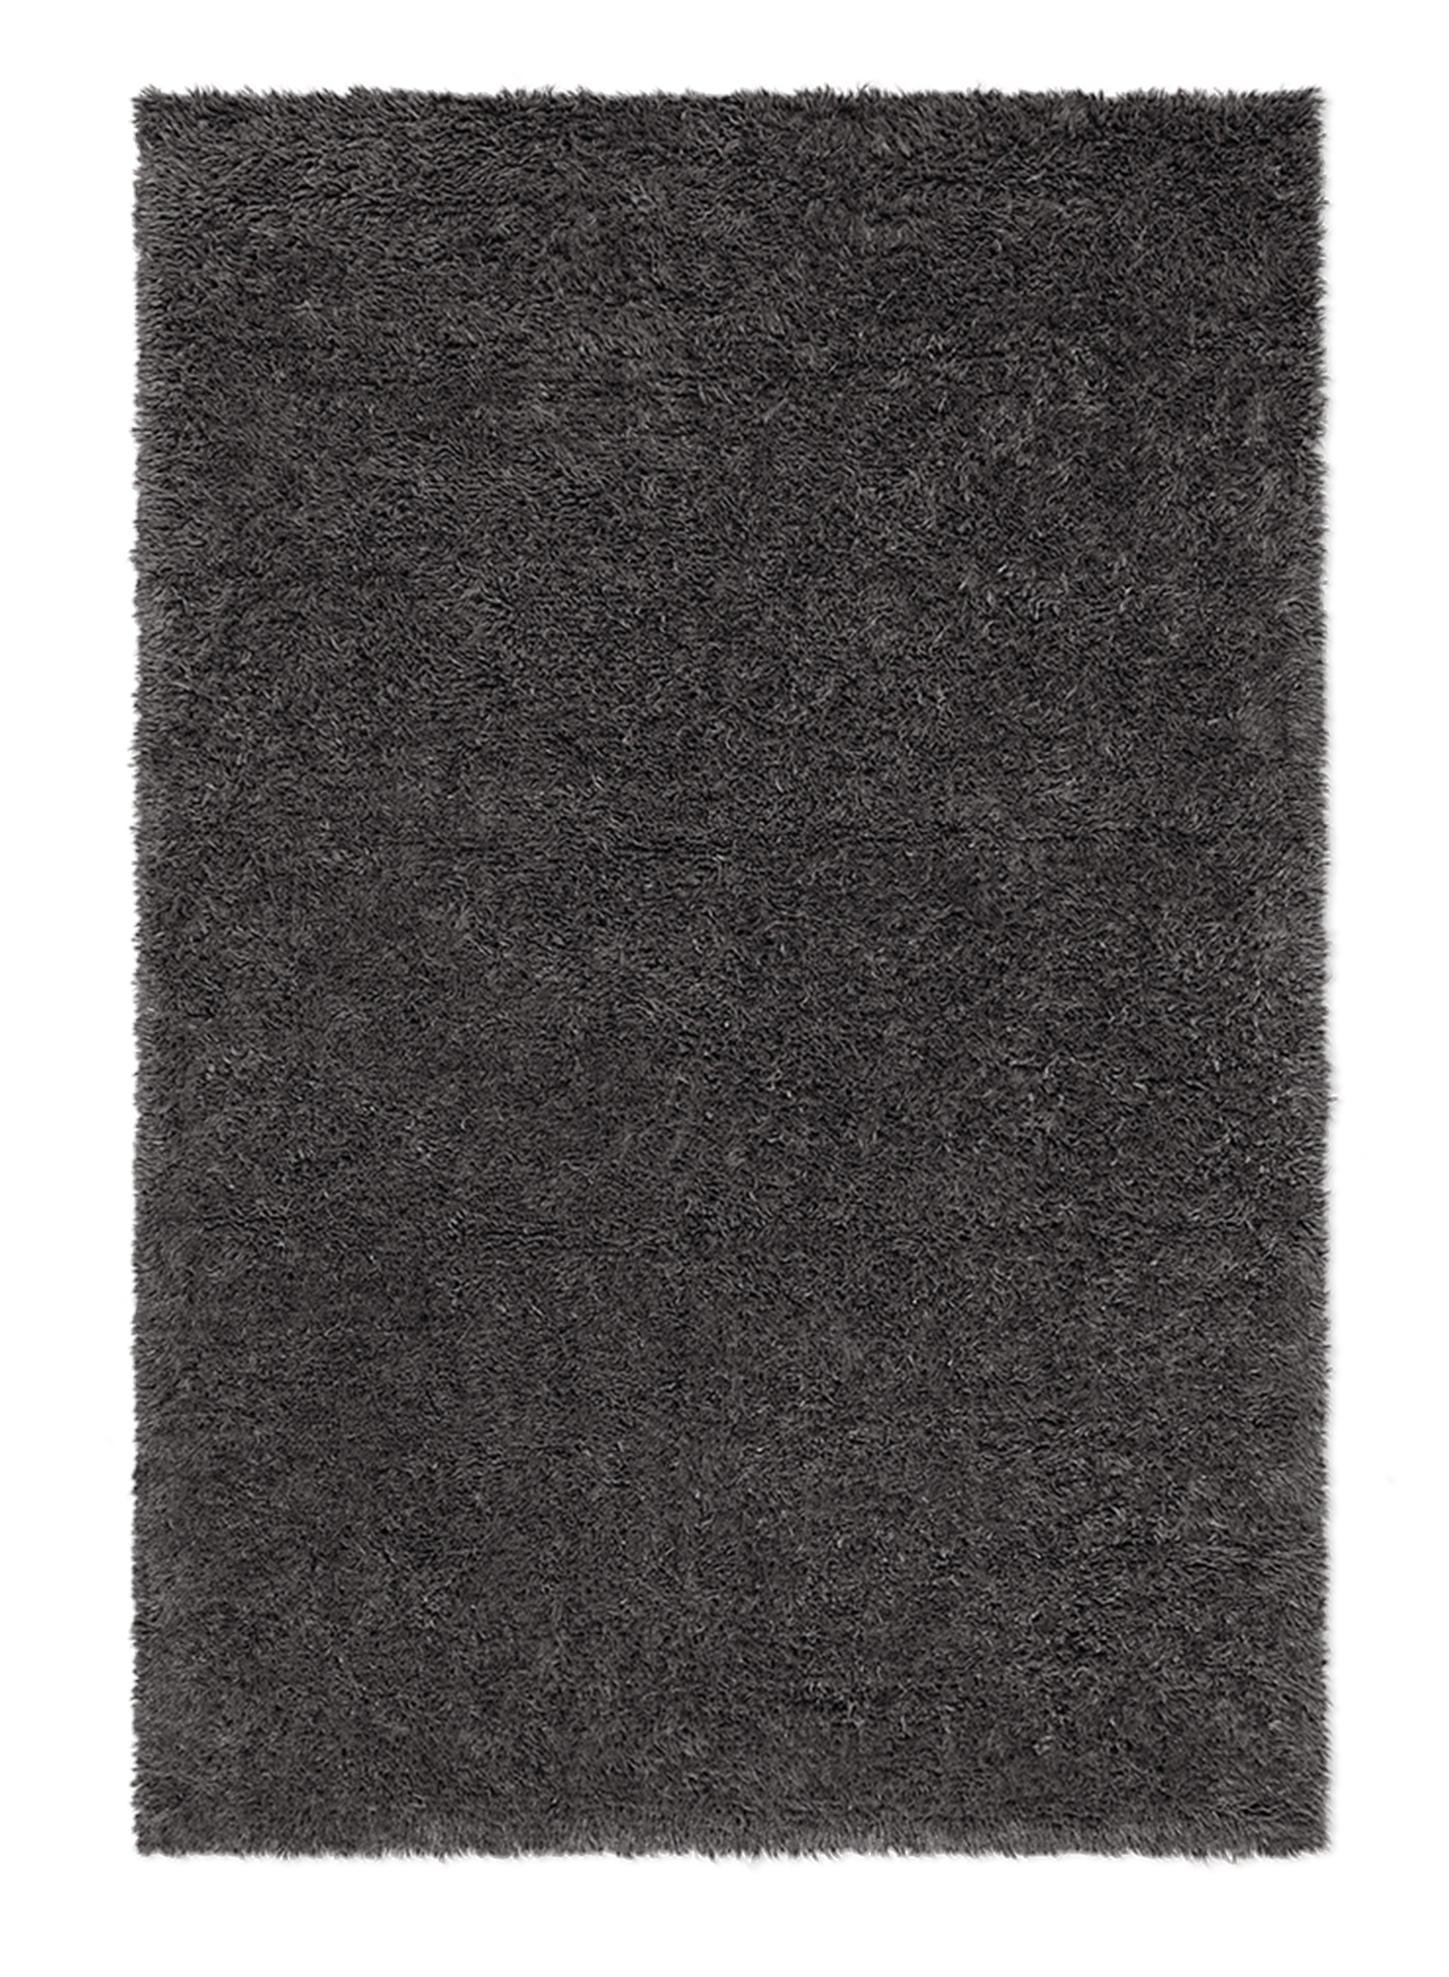 Campaign page. Product image of dark gray, shaggy wool rug Fields.